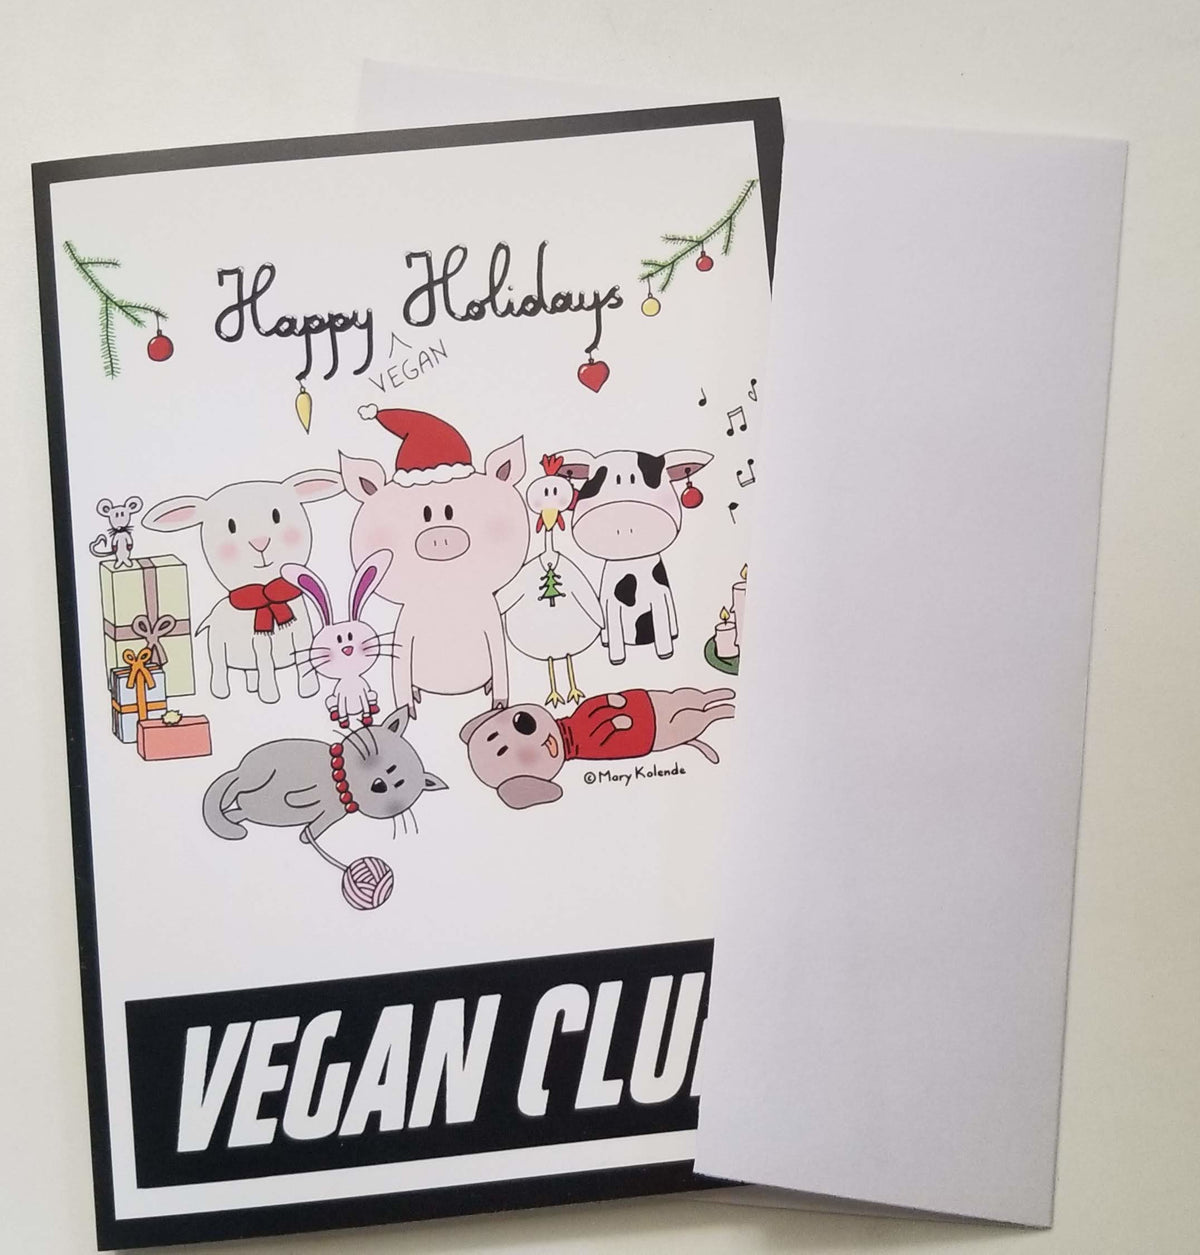 Happy Vegan Holiday Cards for Christmas & Hanukkah